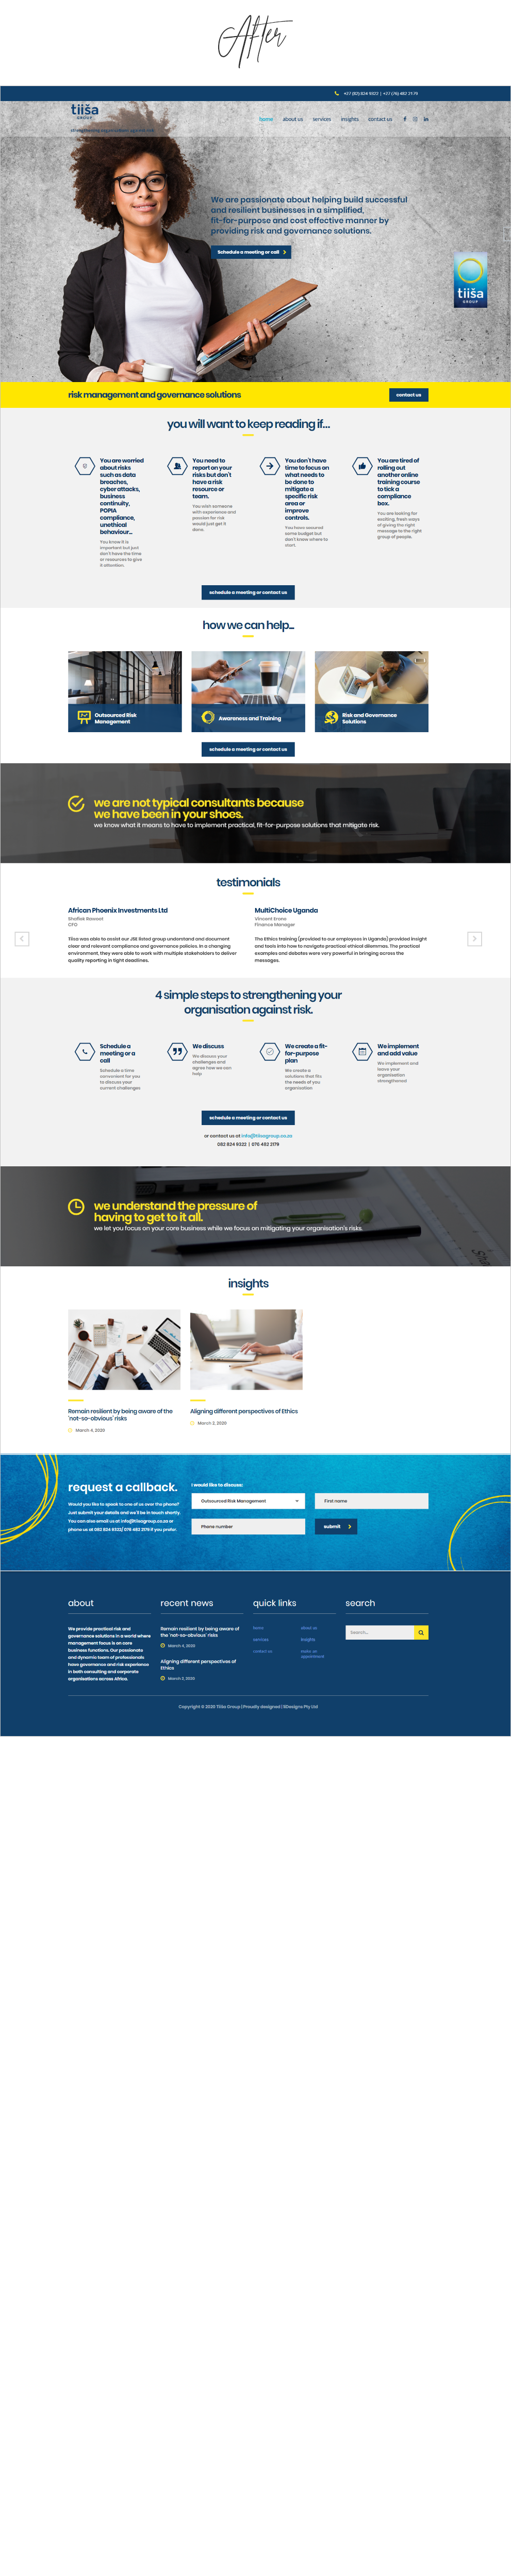 Before and After Website Redesigns - Tiisa Group